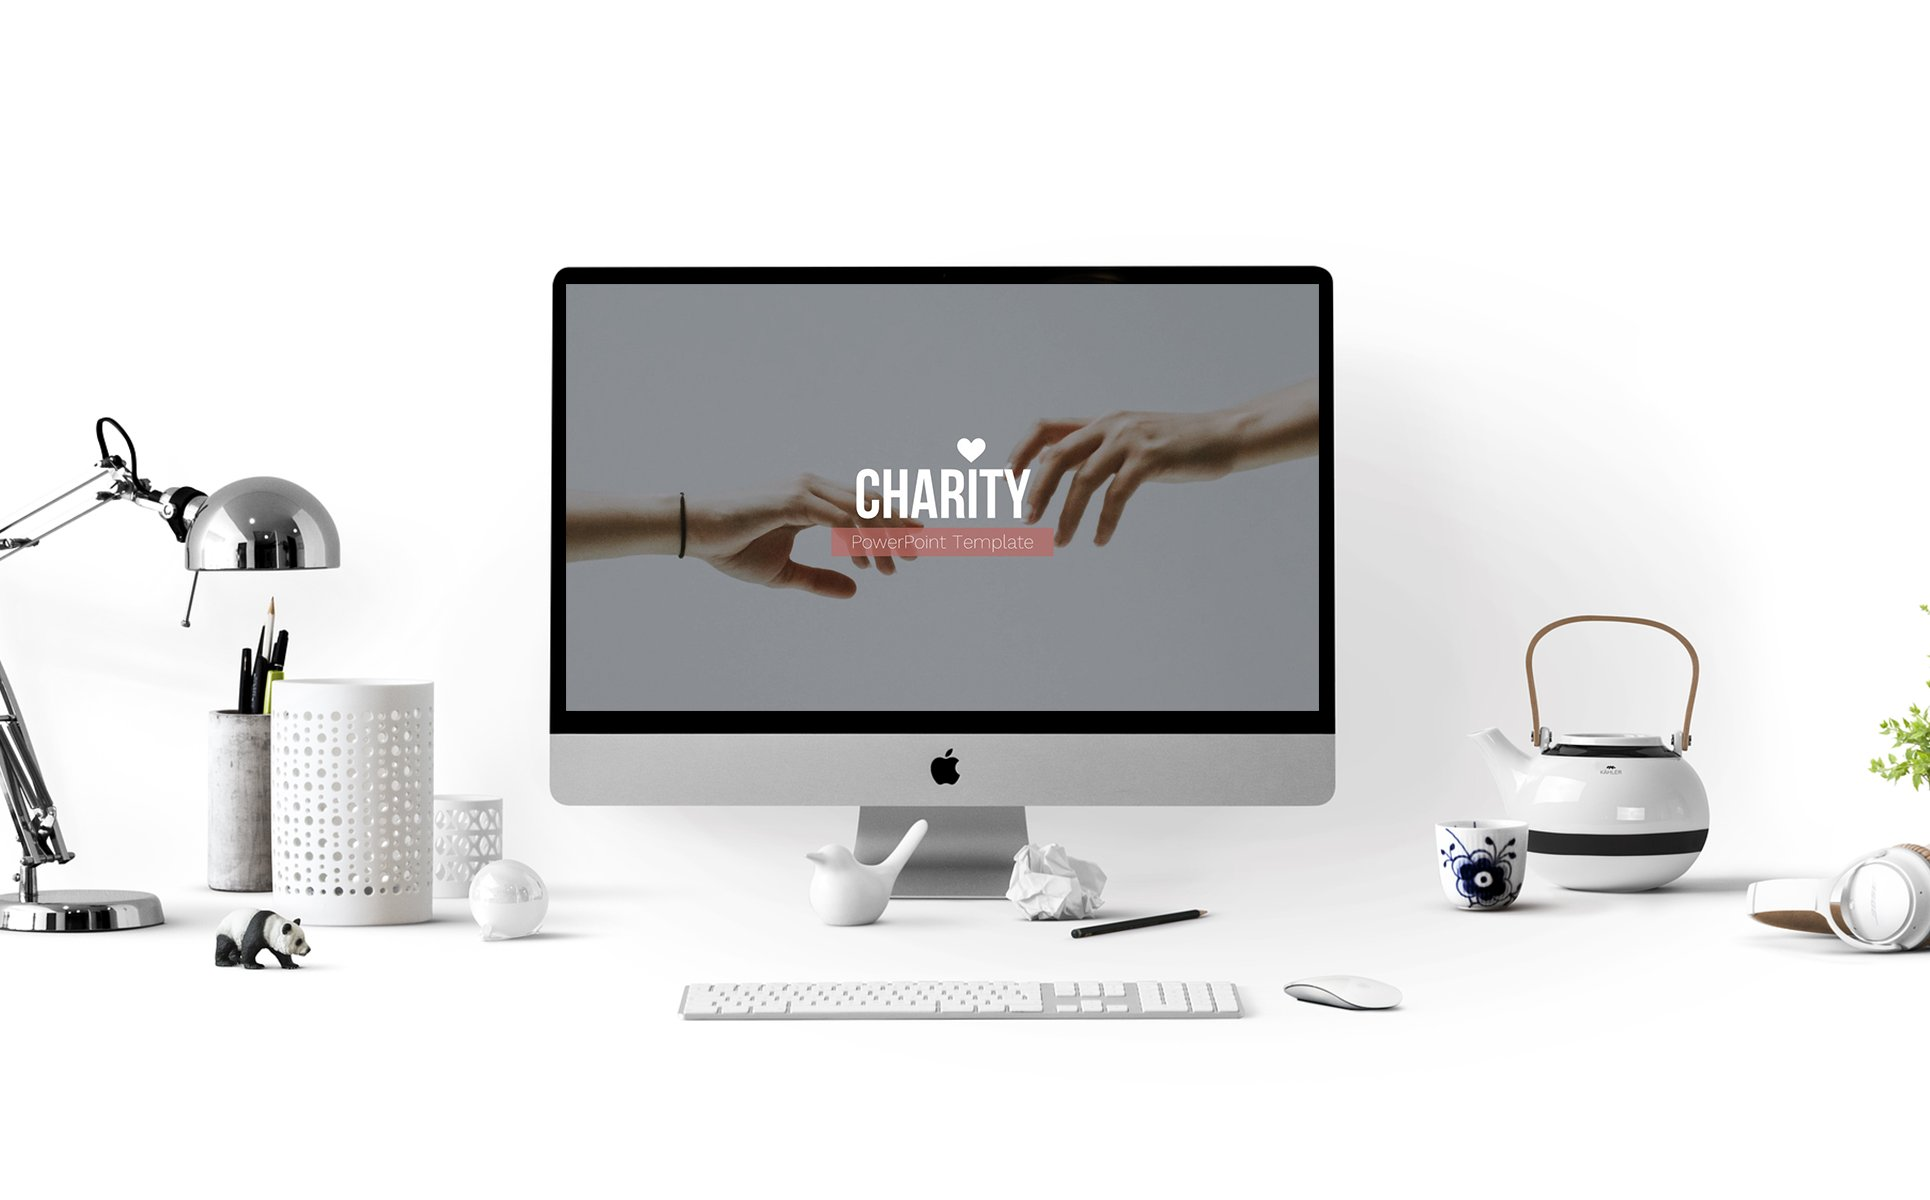 Charity Presentation Template. Slide 1.